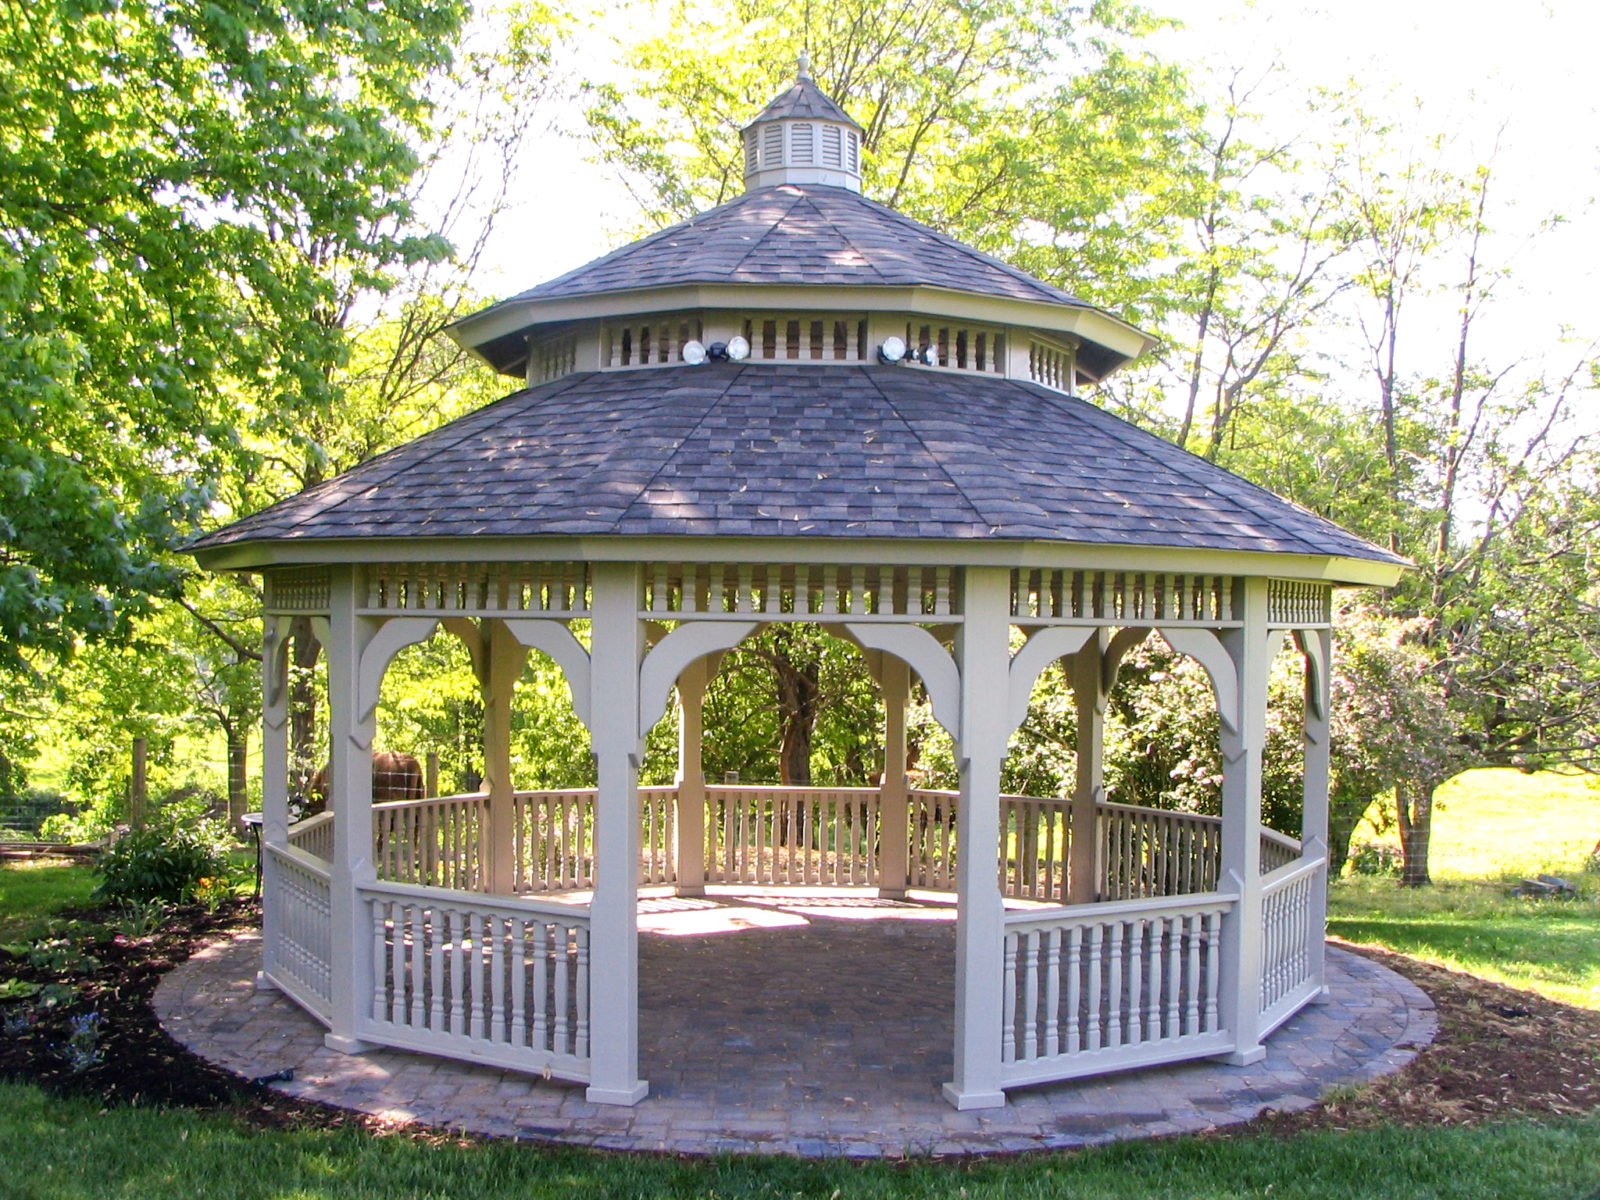 dodecagon gazebo in park